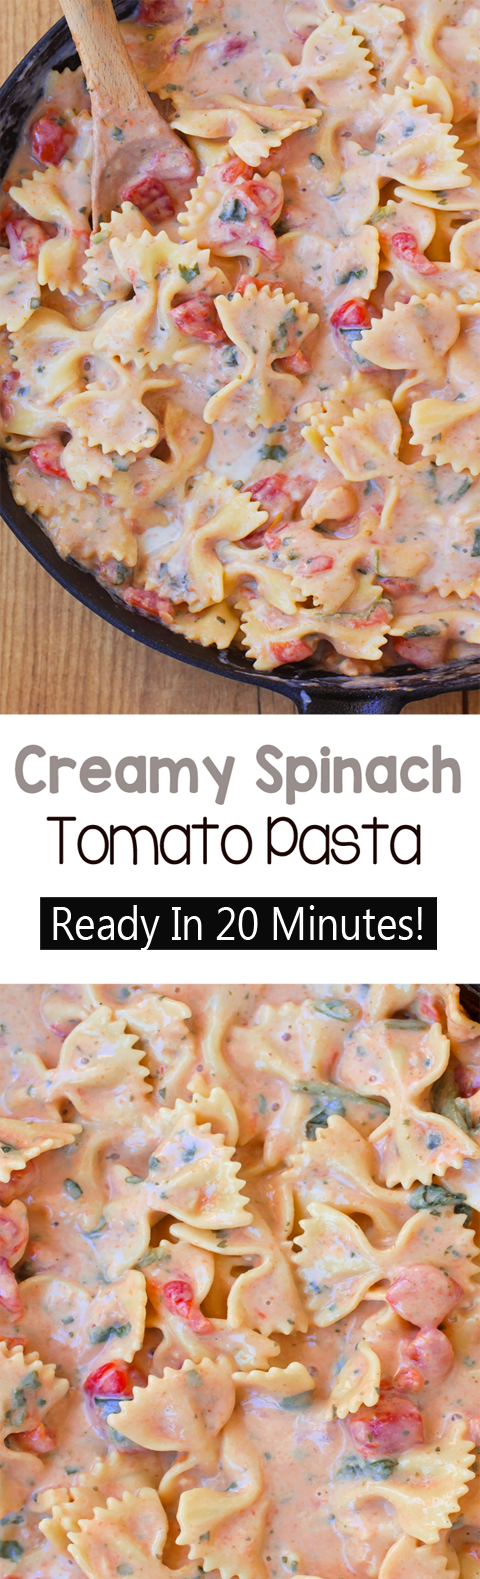 Easy Creamy Spinach Tomato Pasta (Ready In 20 Minutes)